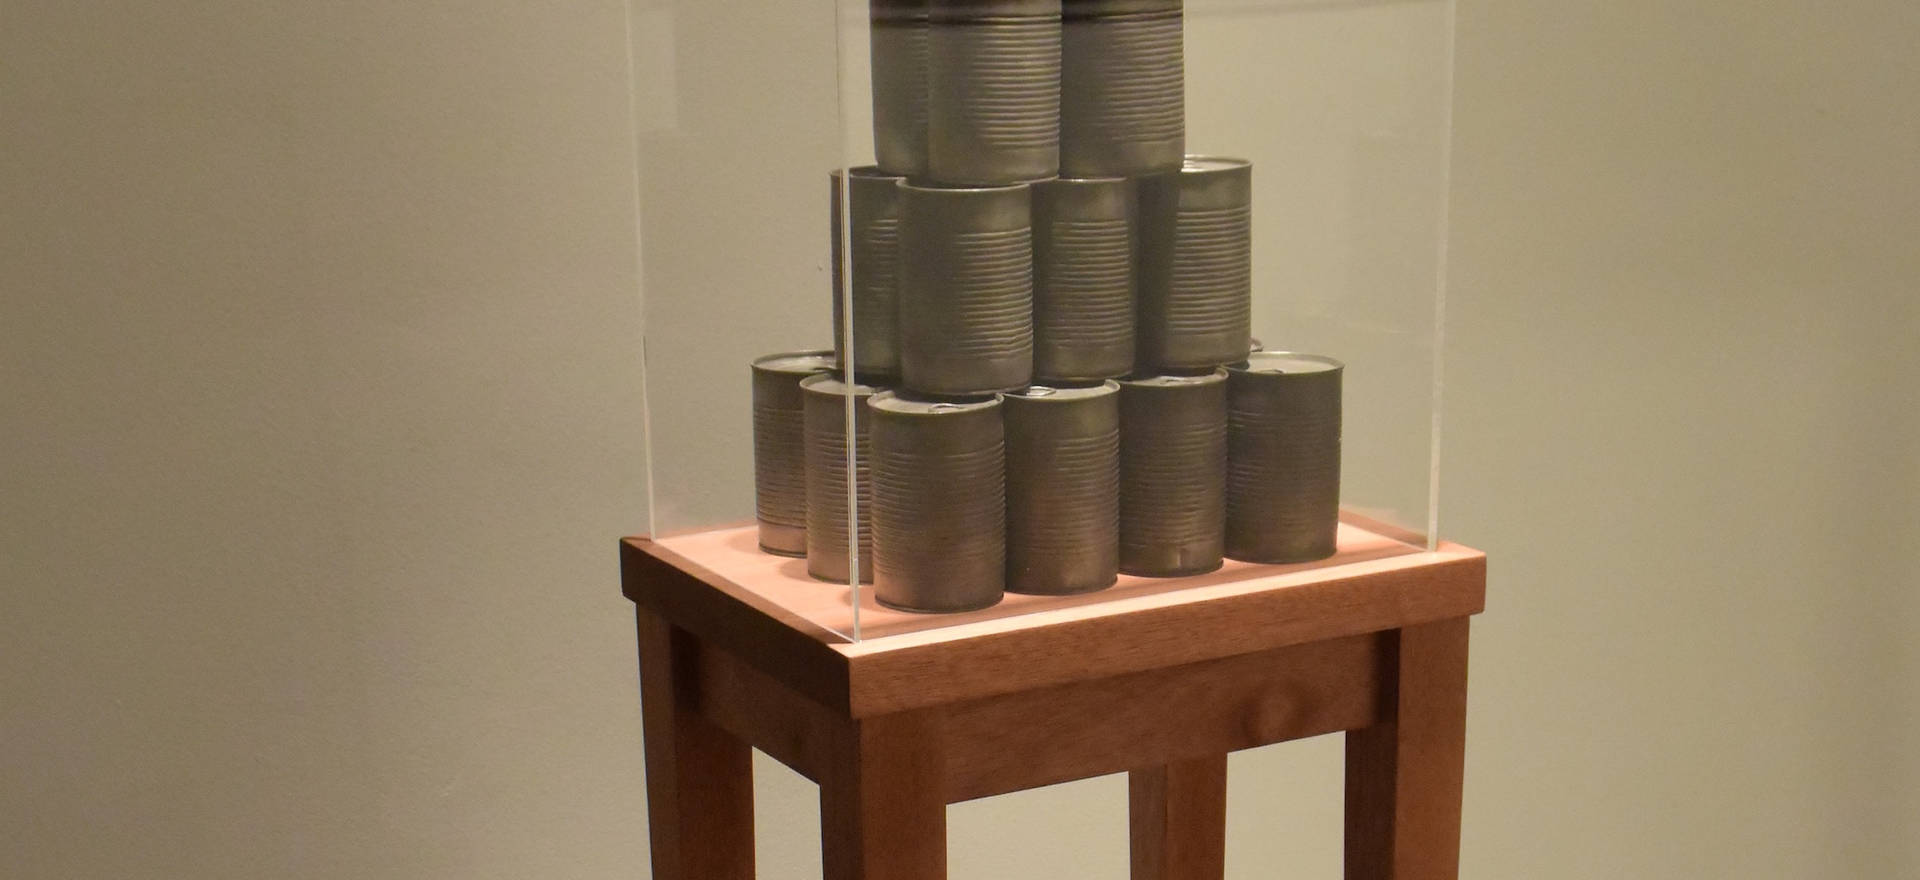 Timeless state of food III, 2014 Wood table with 25 reproductions in bronze of food cans and acrylic cover. 51.18 x 15.74 x 11.81 inches. 130 x 40 x 30 cm.